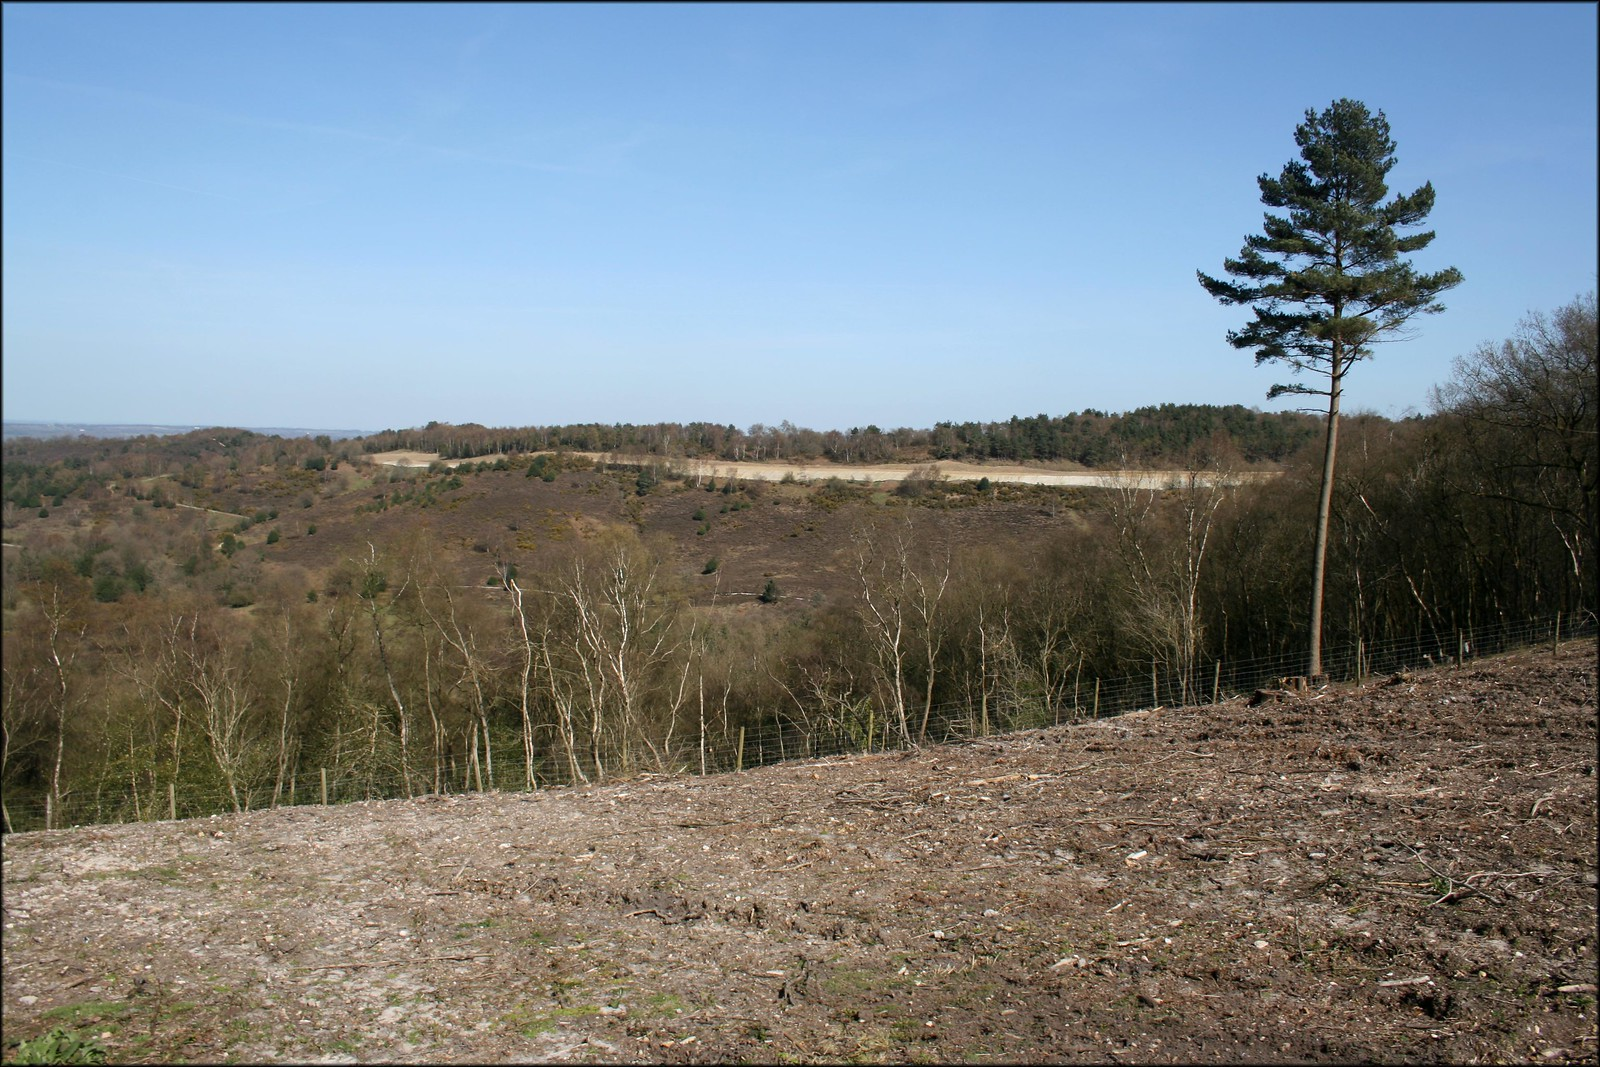 Hindhead common The former A3 road can be seen at the back of the picture.